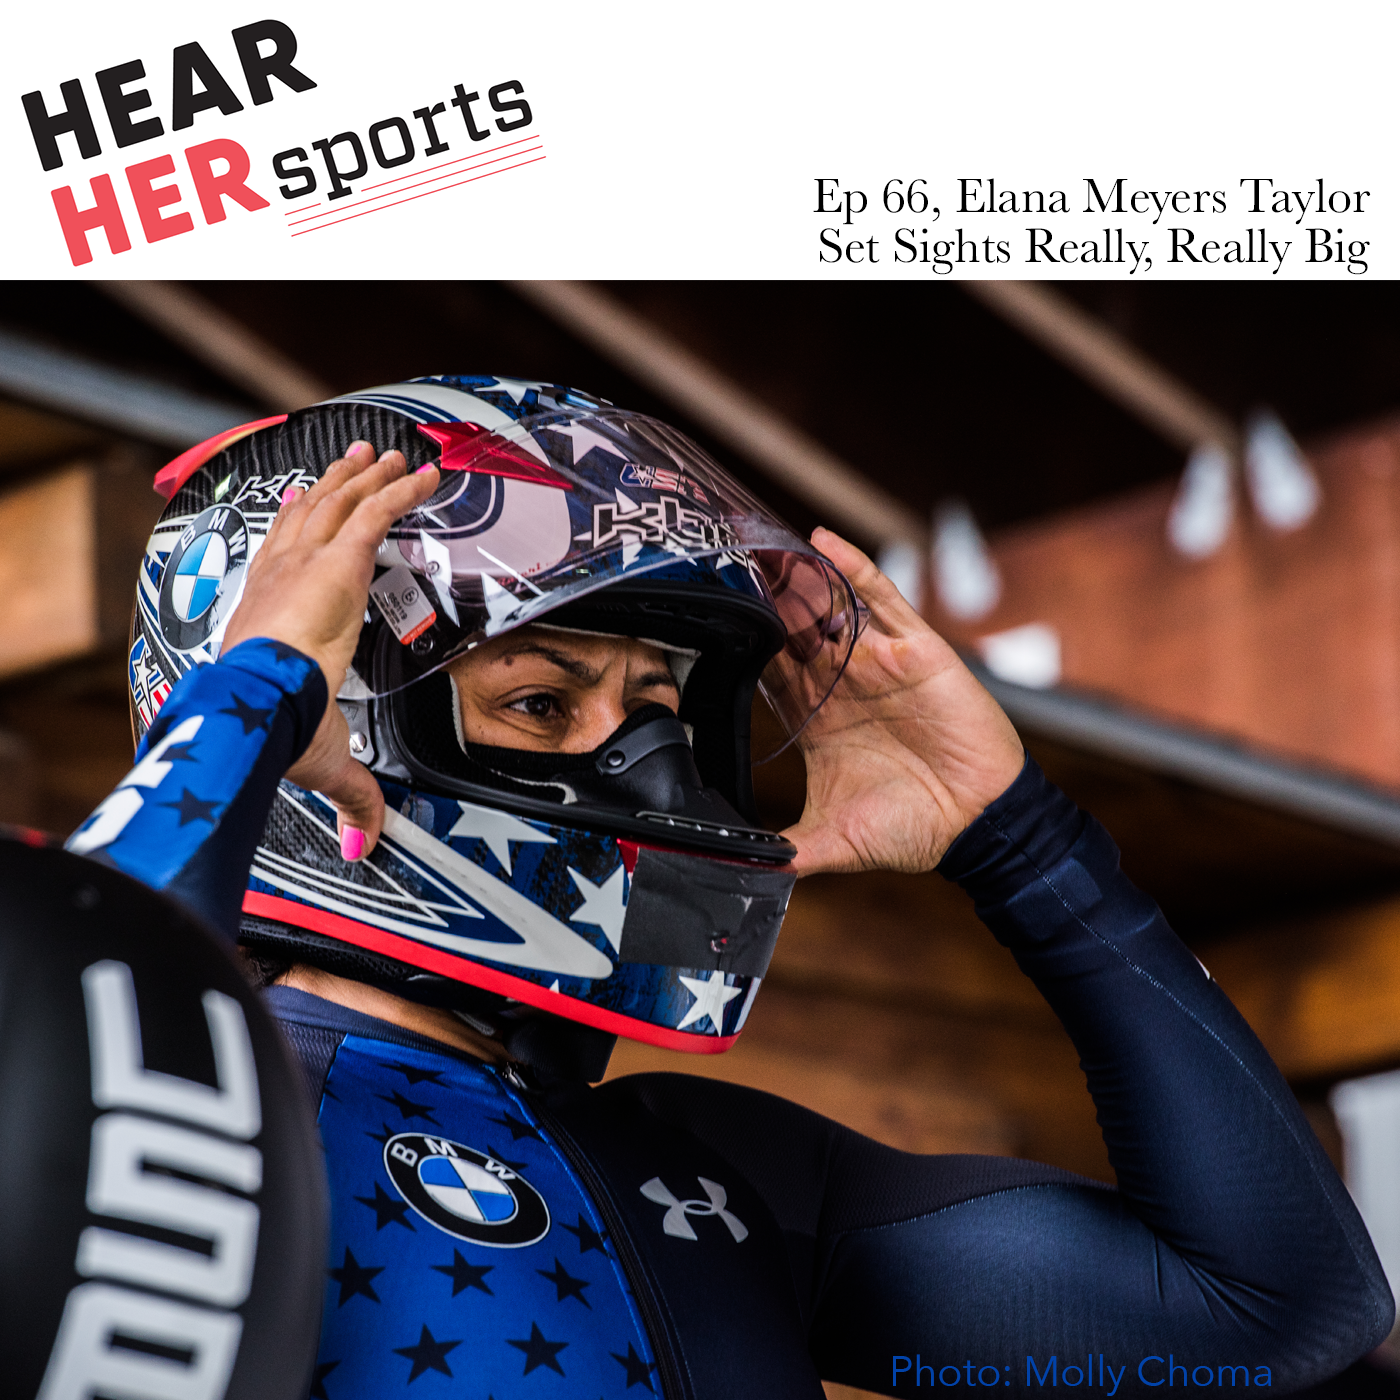 Hear Her Sports Elana Meyers Taylor bobsled Ep66.png